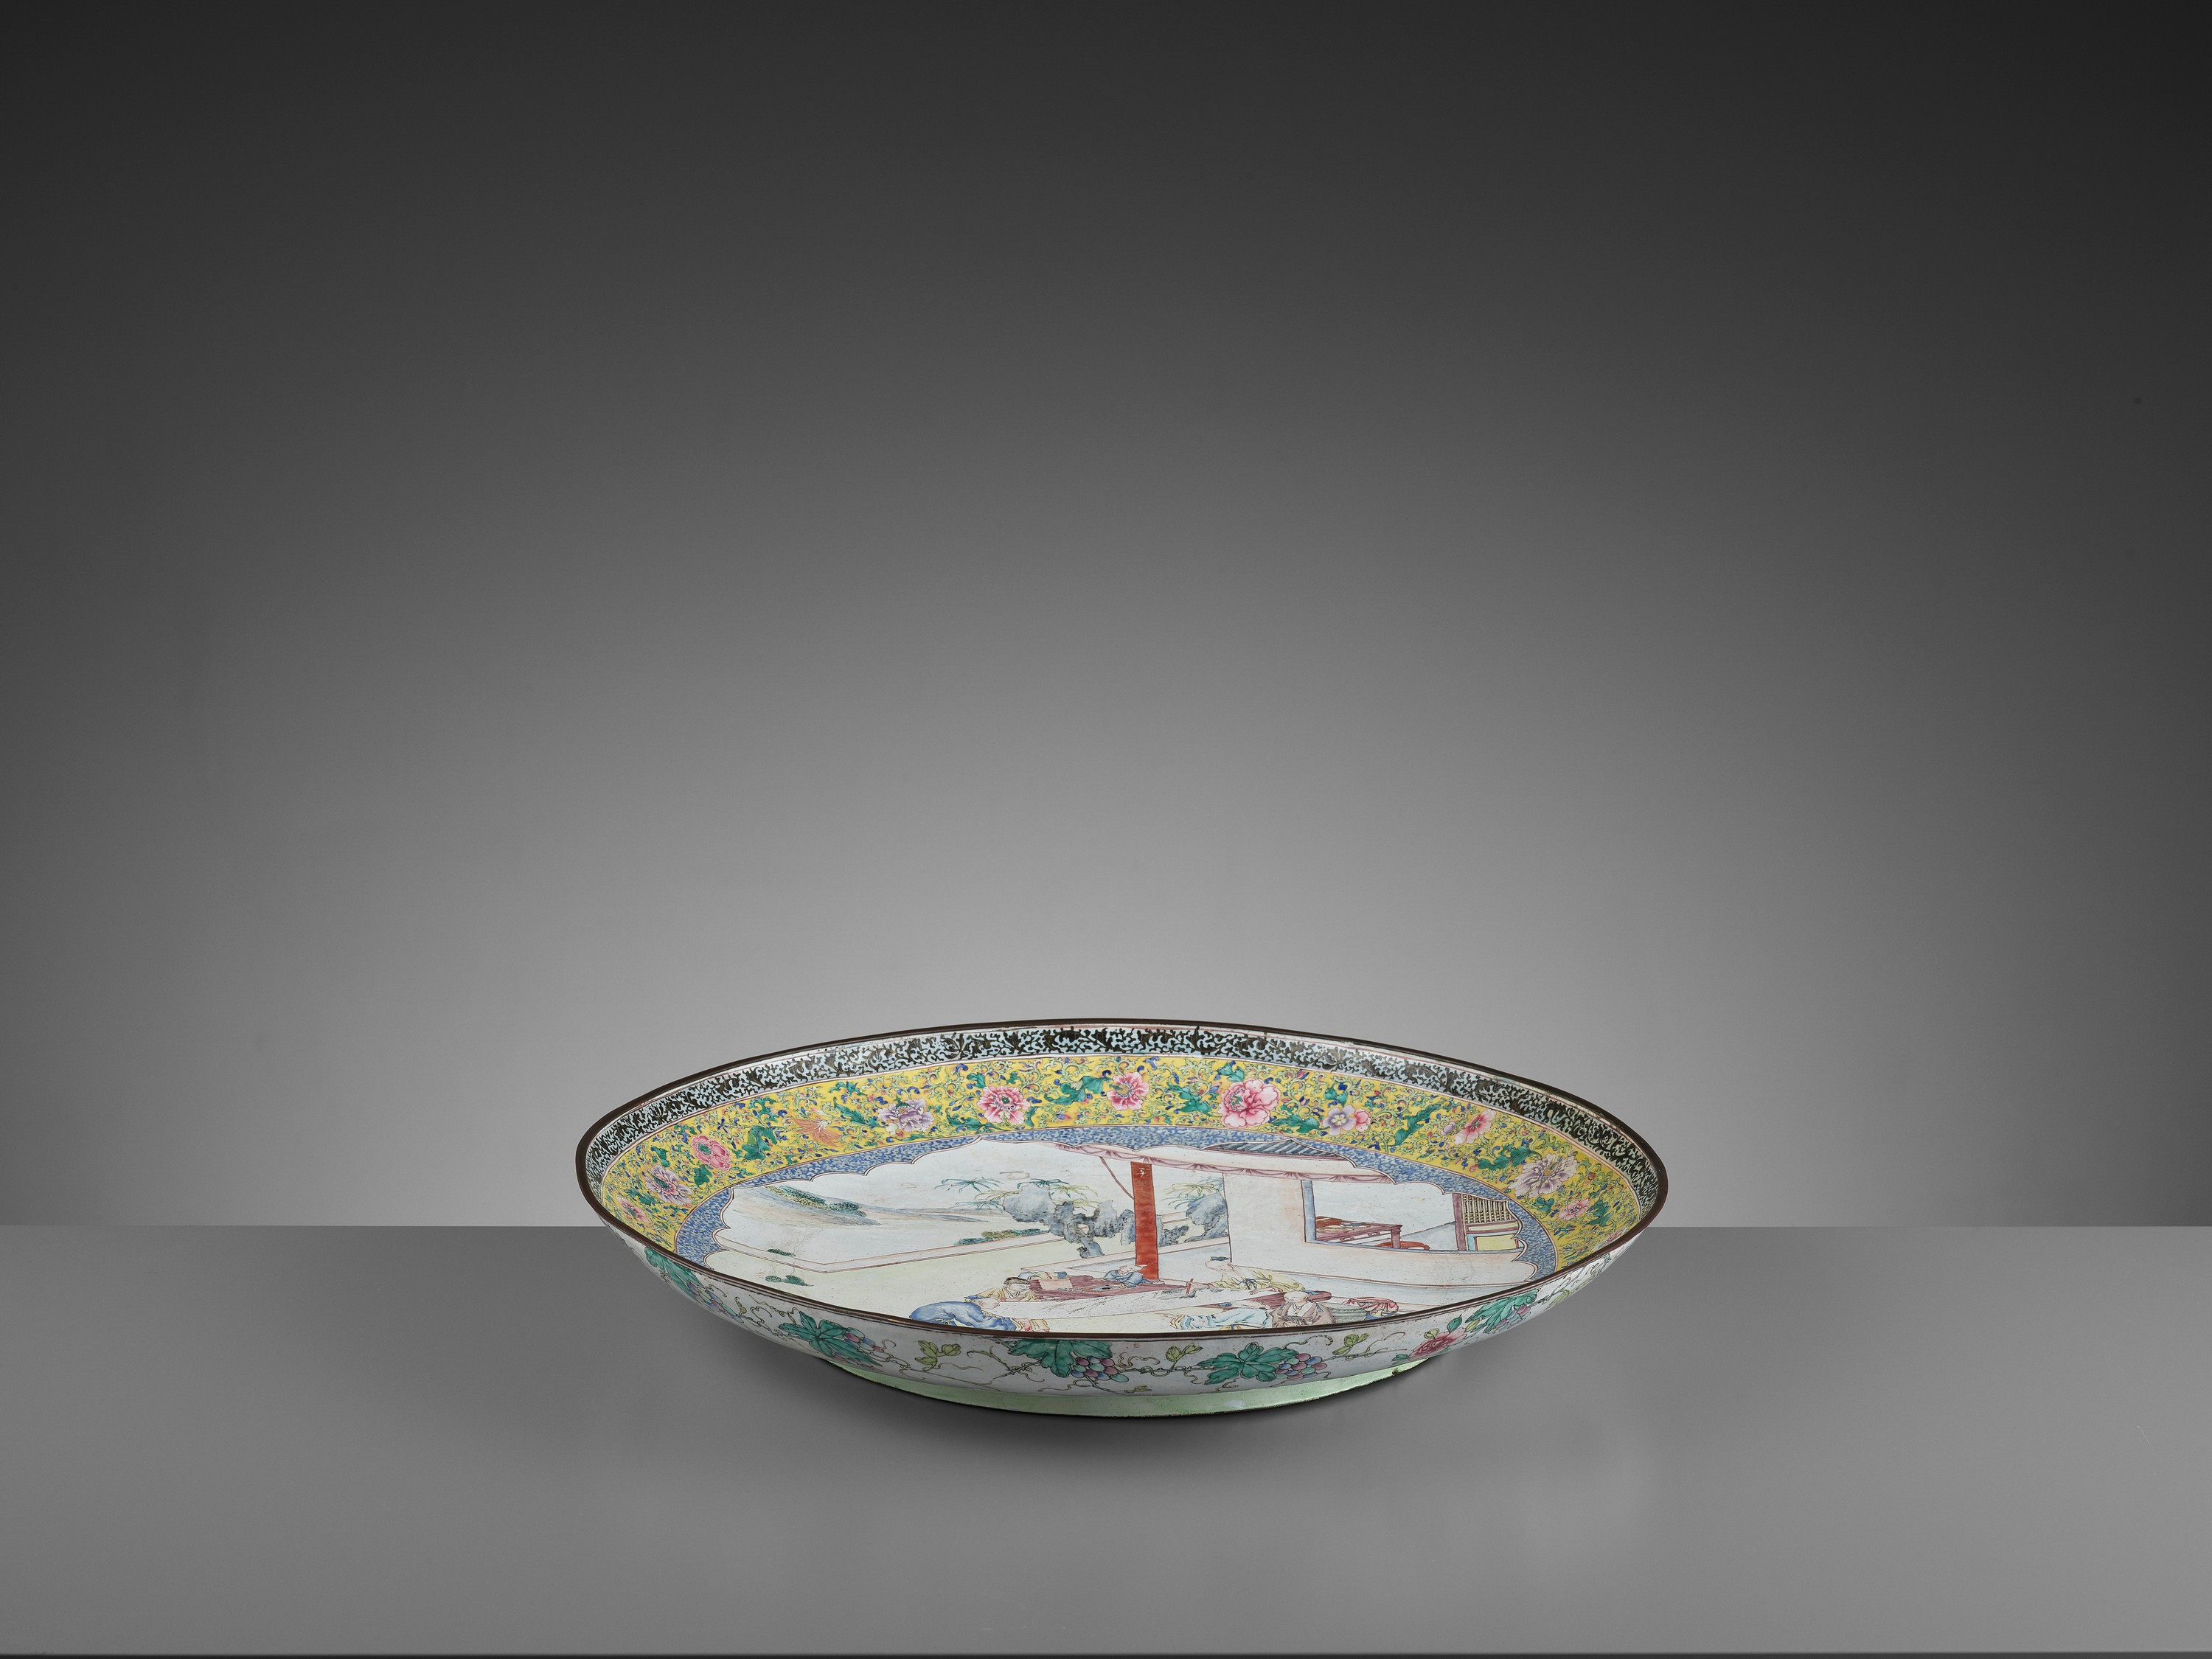 AN EXCEPTIONAL AND VERY LARGE CANTON ENAMEL 'SCHOLARS' DISH, EARLY 18TH CENTURY - Image 7 of 12